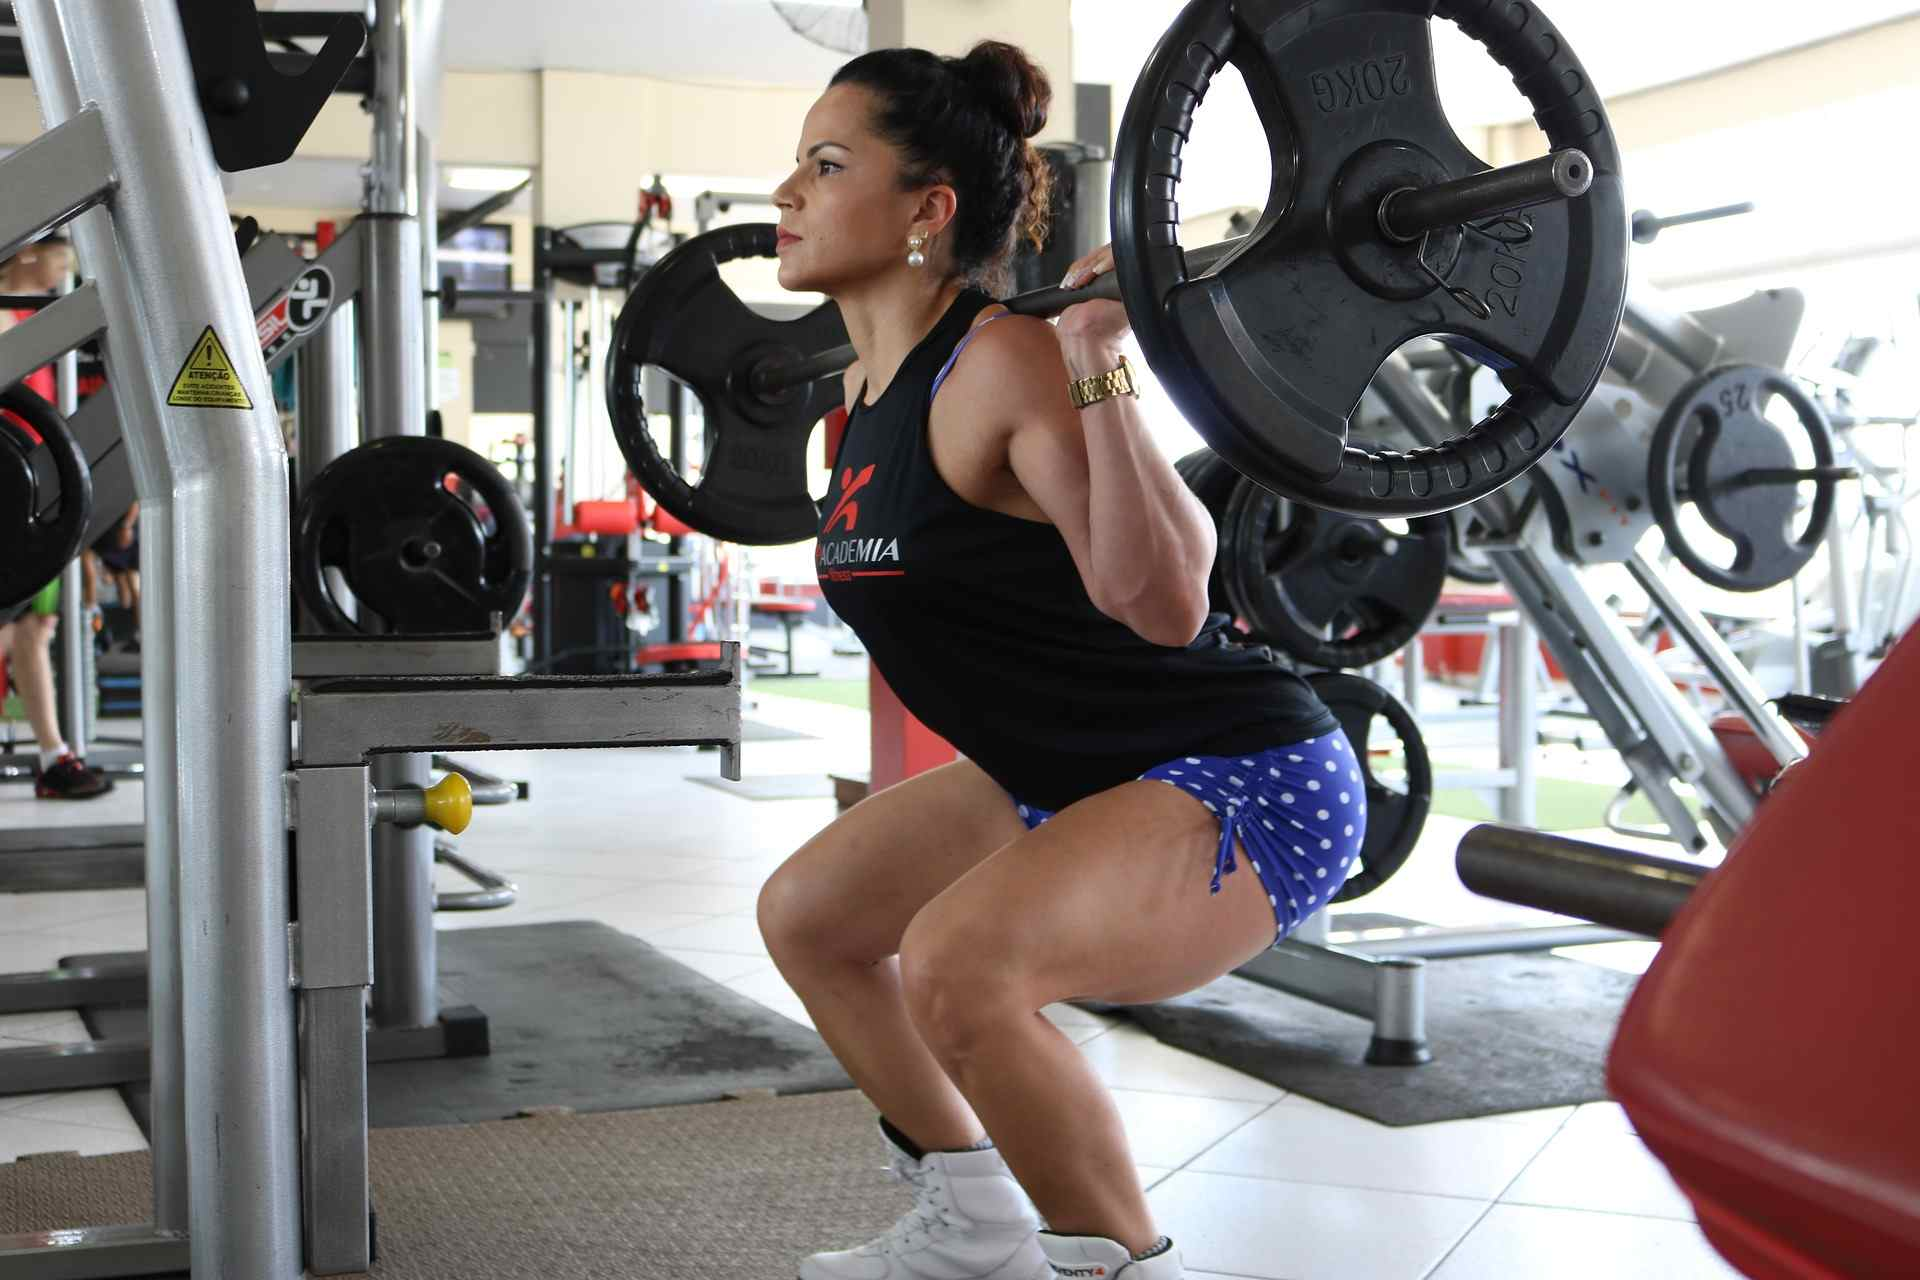 woman weight training doing squats with barbell on shoulders